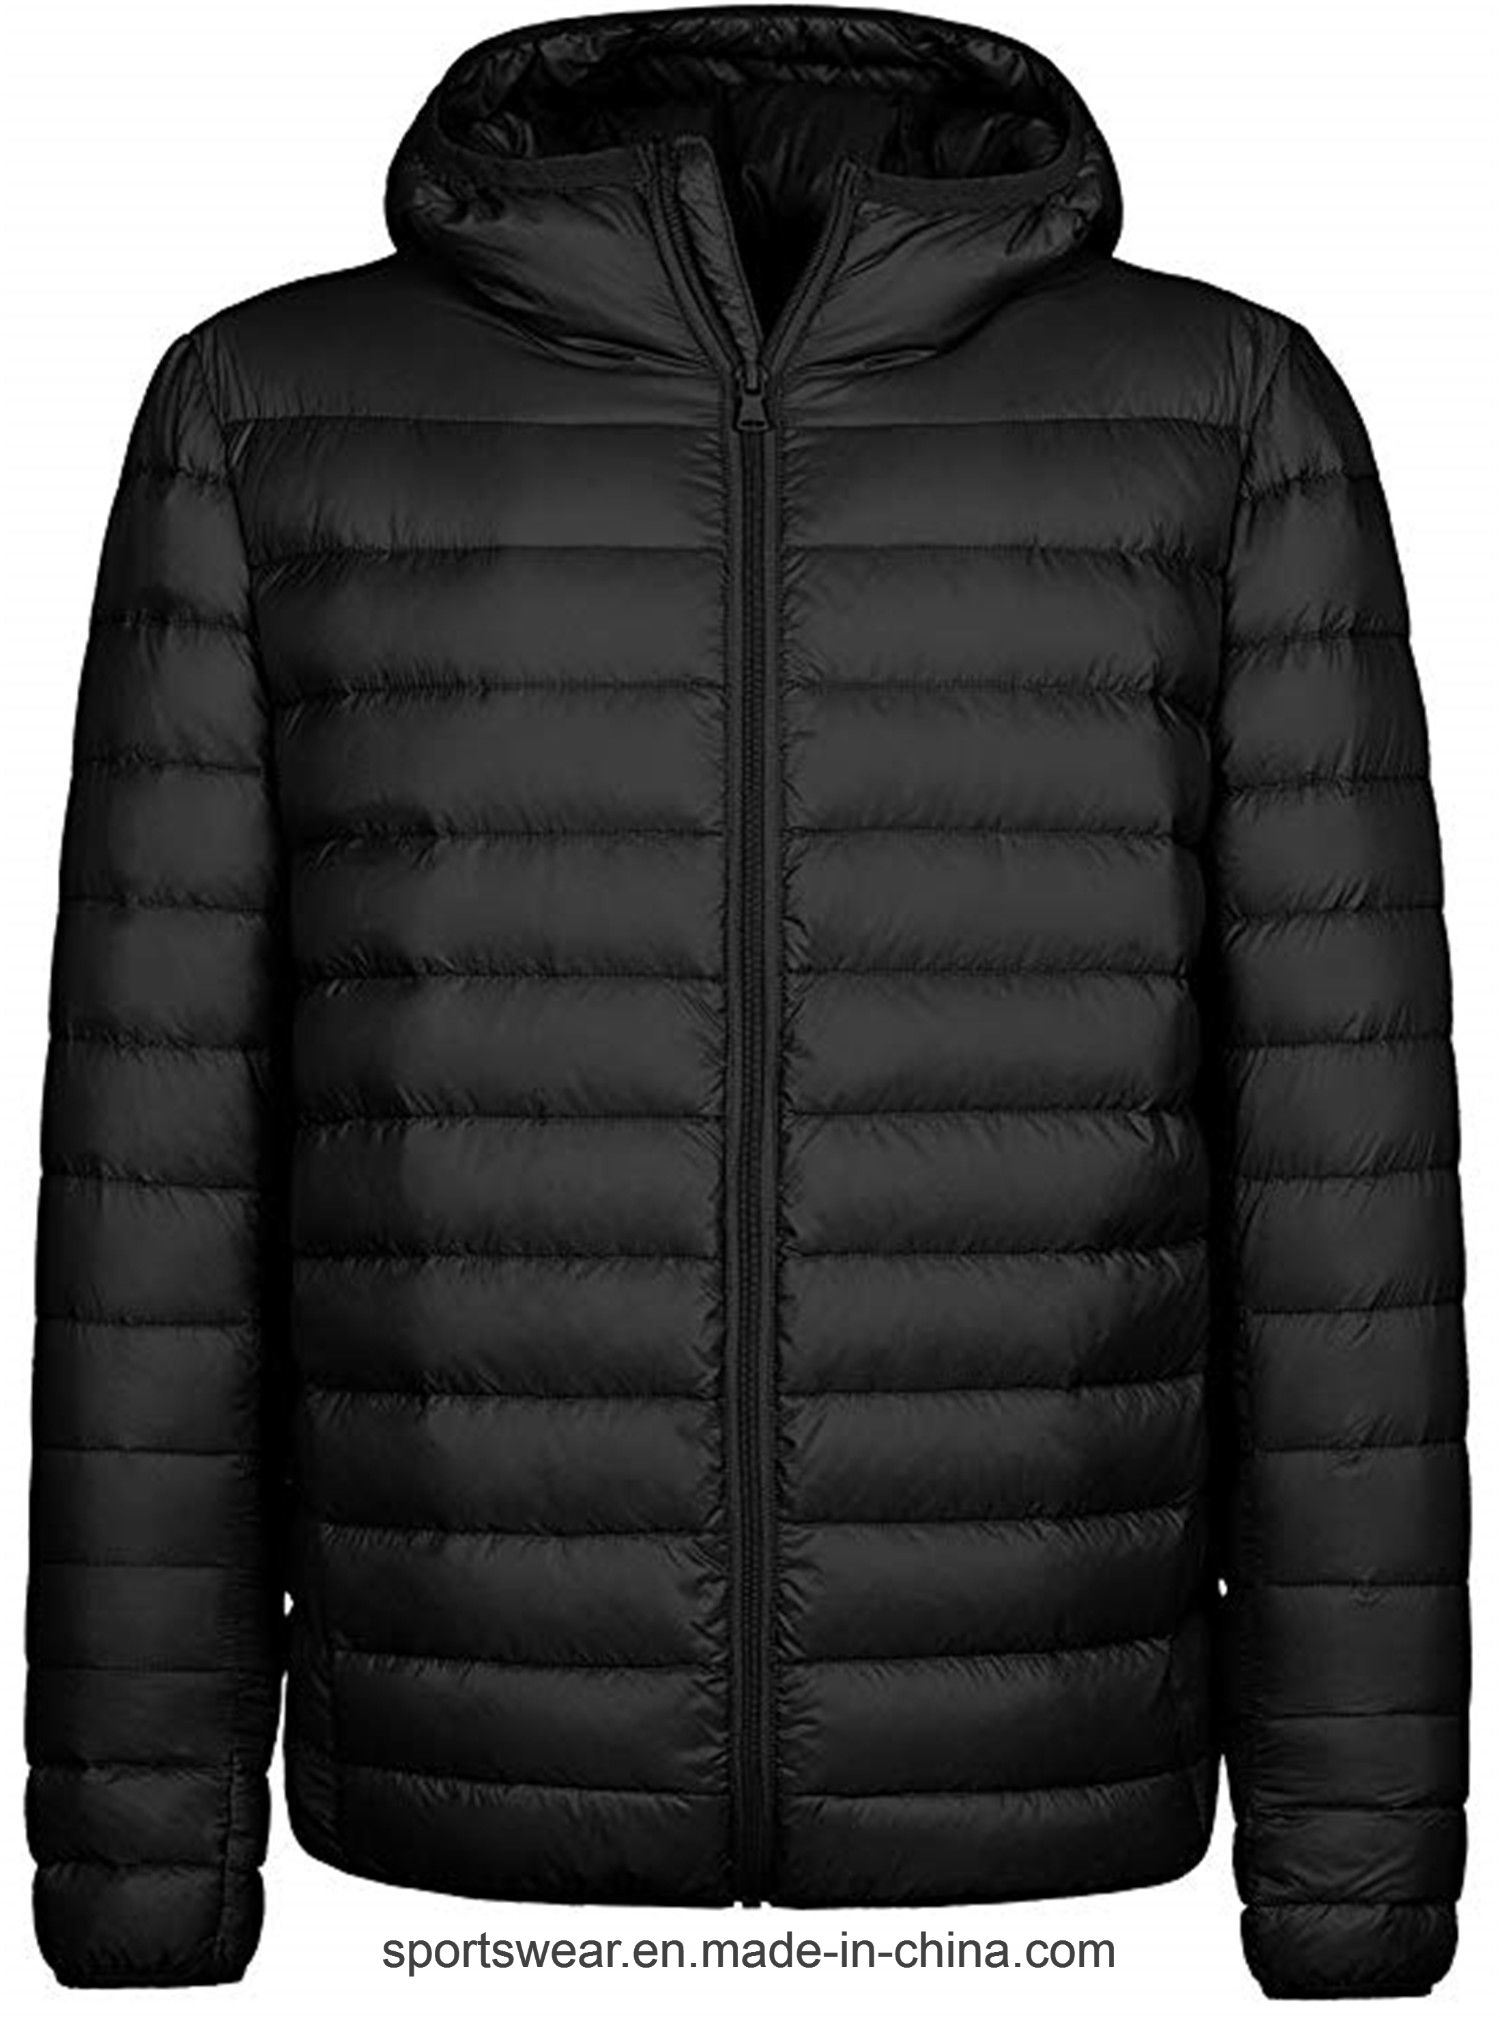 586c78a96 China Down Jacket, Down Jacket Wholesale, Manufacturers, Price    Made-in-China.com